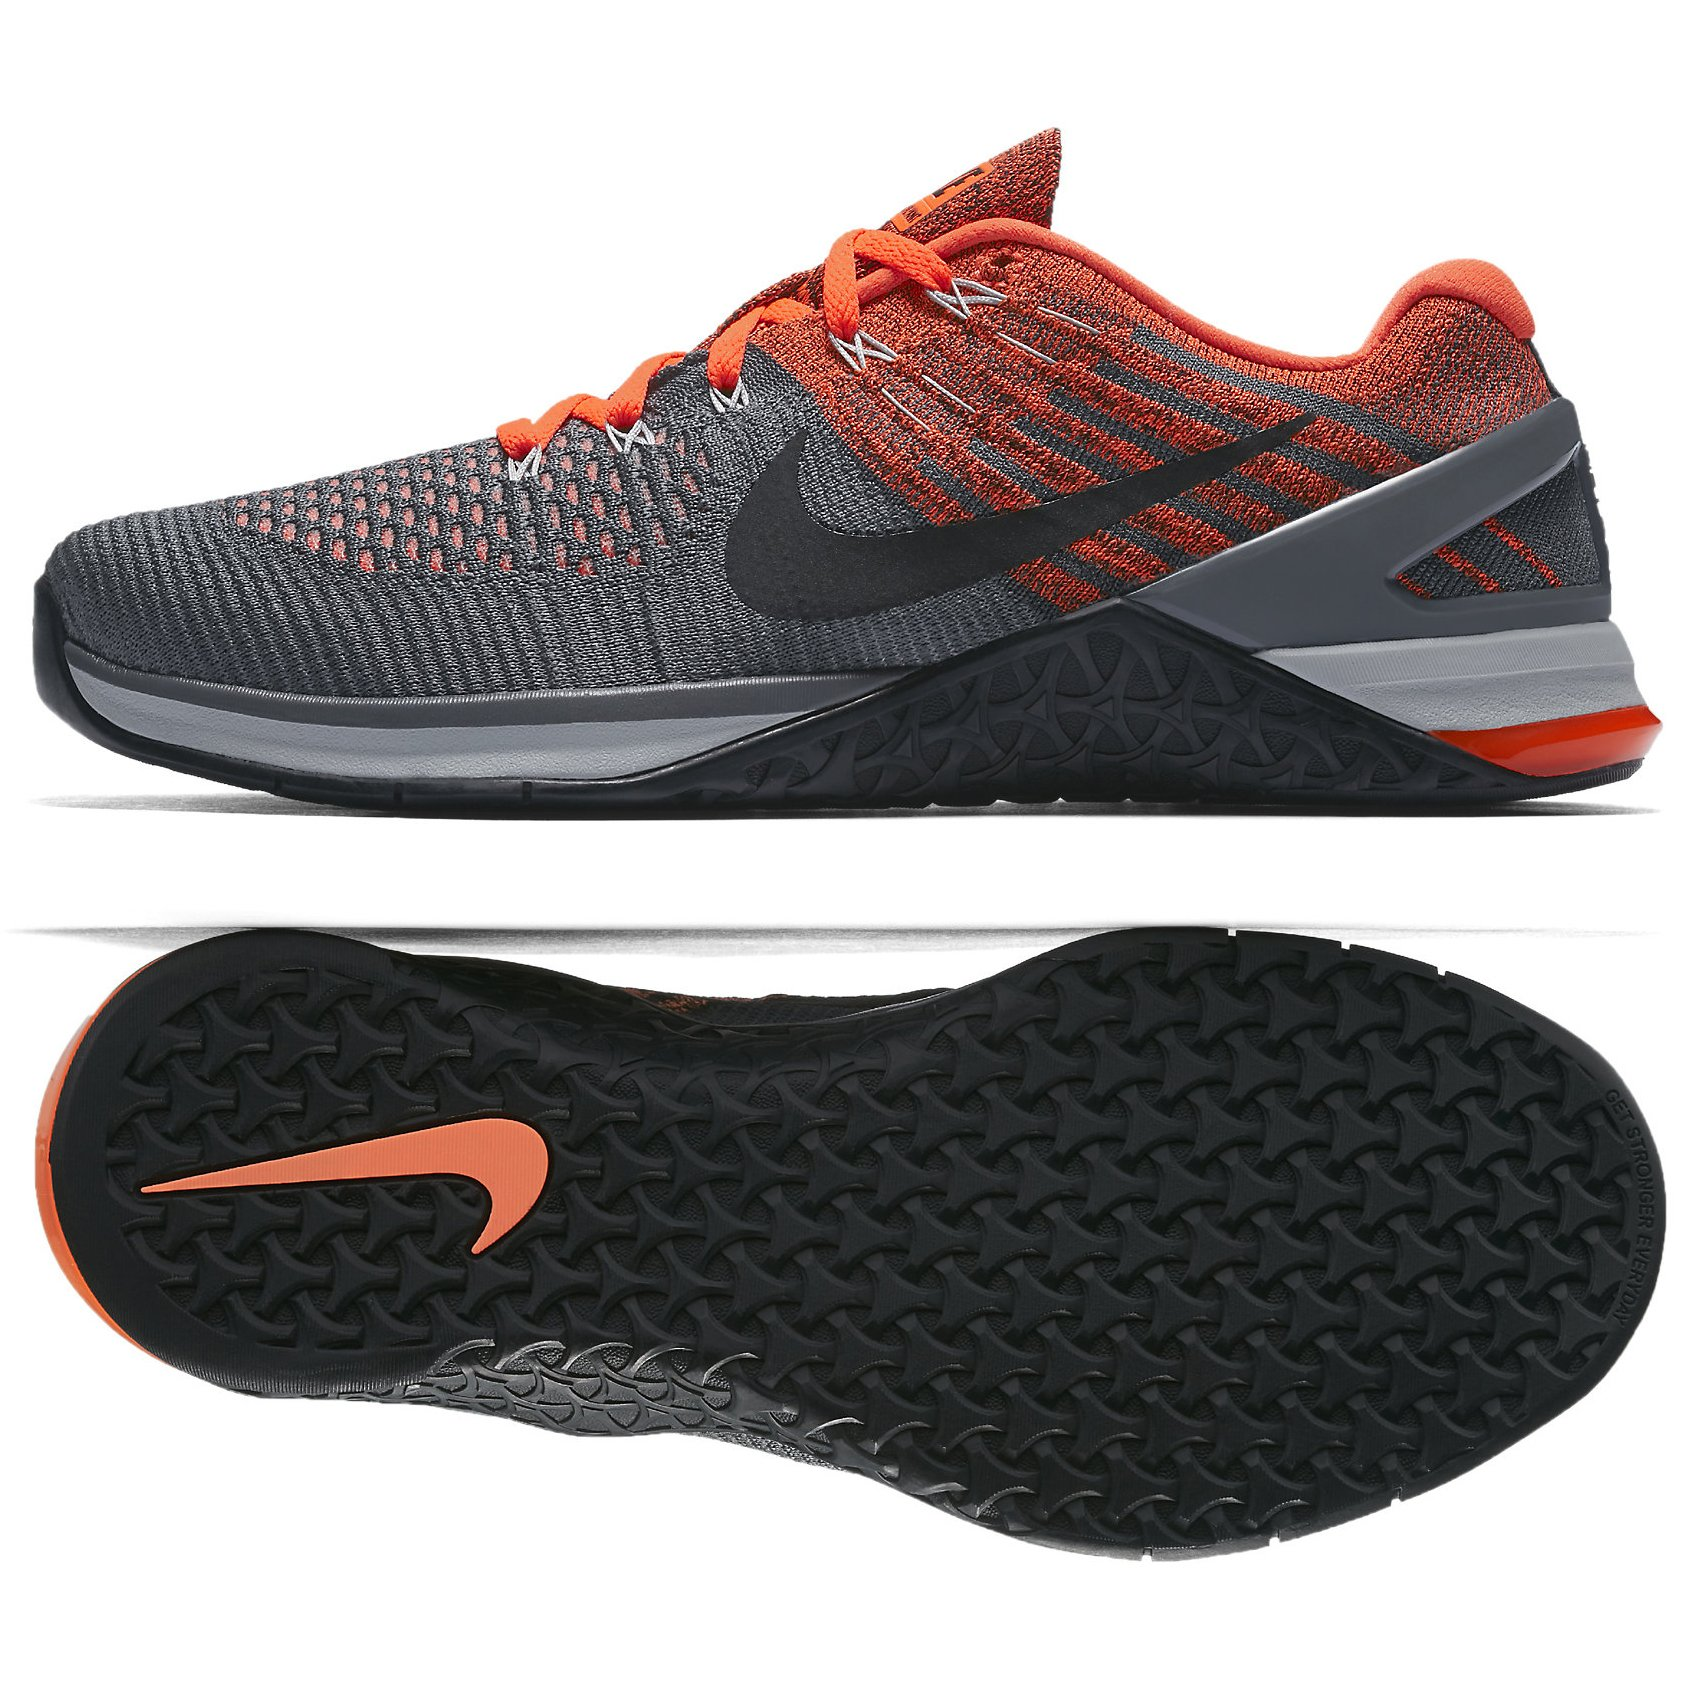 huge selection of e834c 7d91b Galleon - NIKE Metcon DSX Flyknit 852930-010 Dark Grey Crimson Black Men s  Training Shoes (11.5)